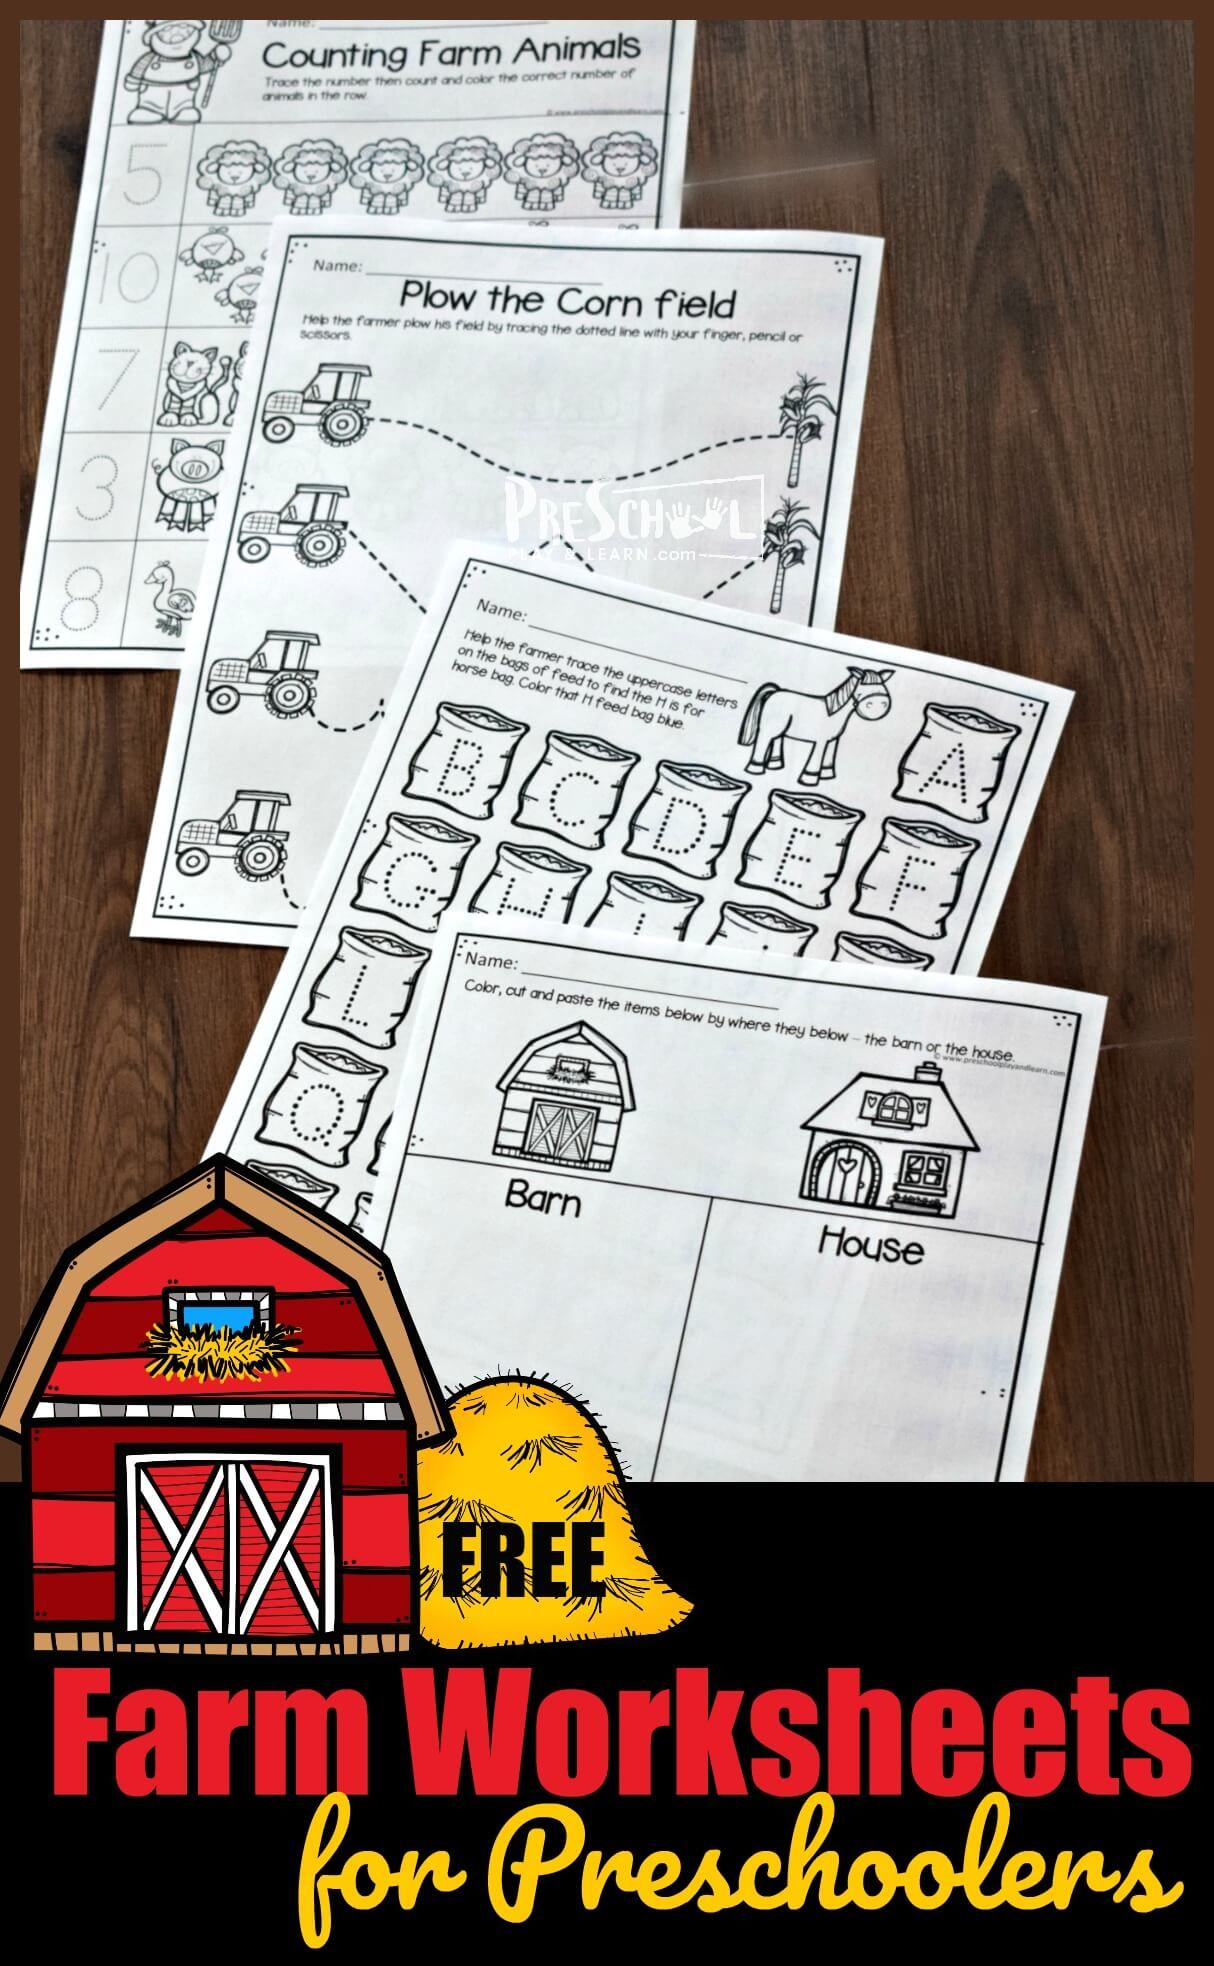 Free Farm Worksheets For Preschoolers